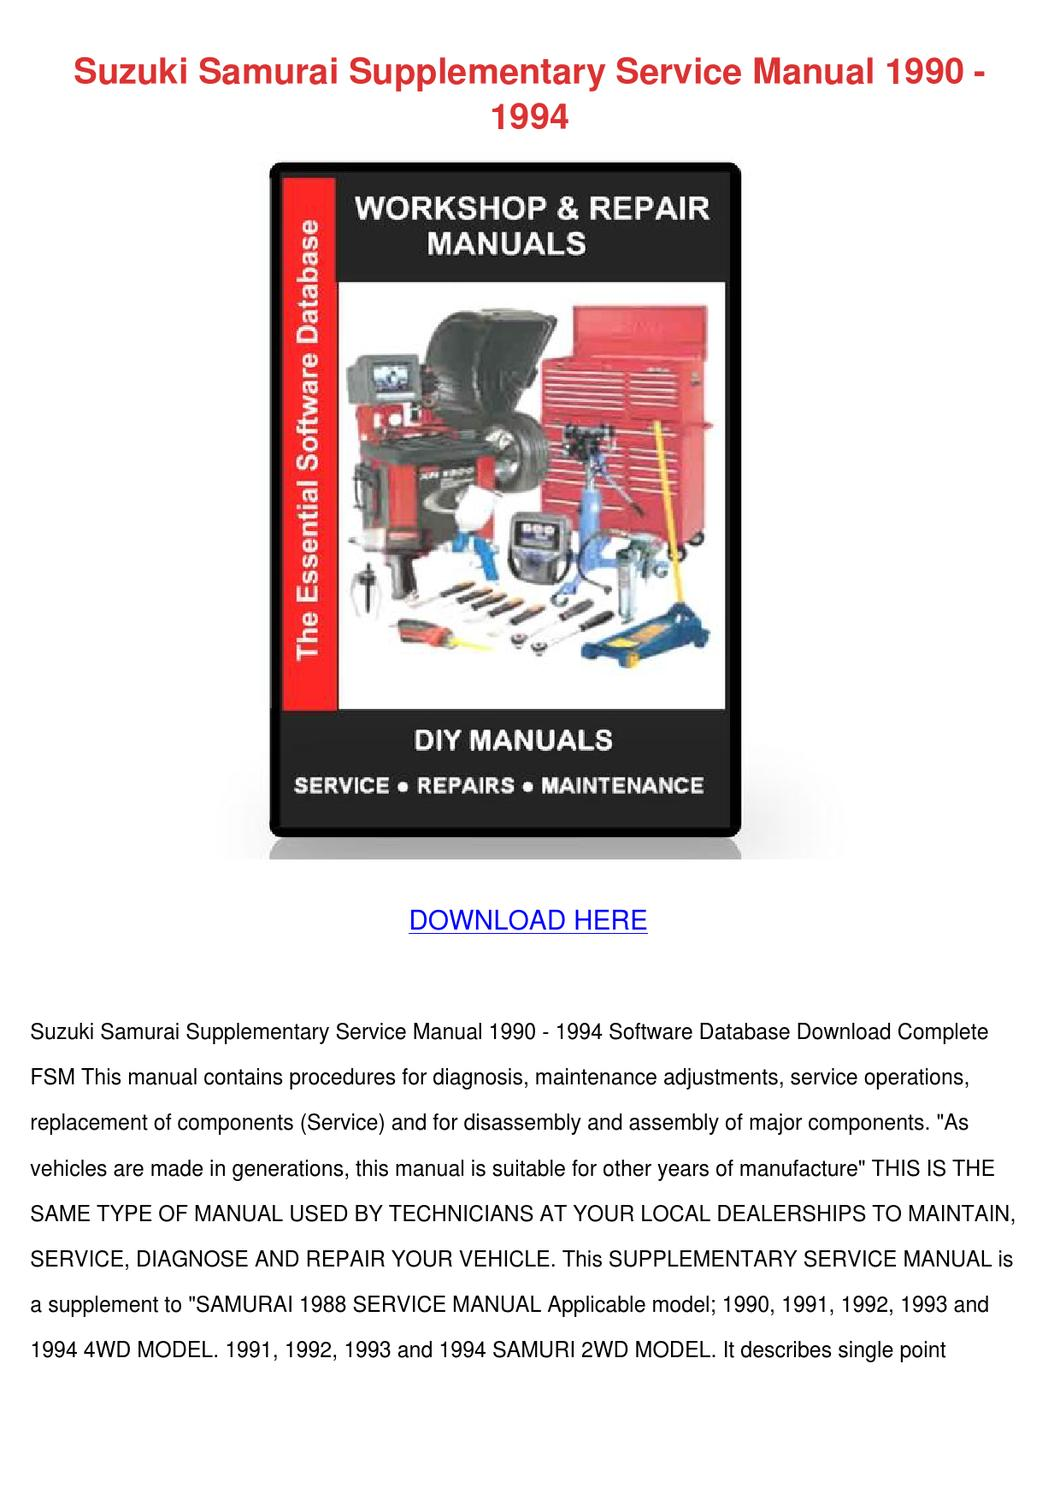 Suzuki Samurai Supplementary Service Manual 1 by GretchenFitzpatrick - issuu